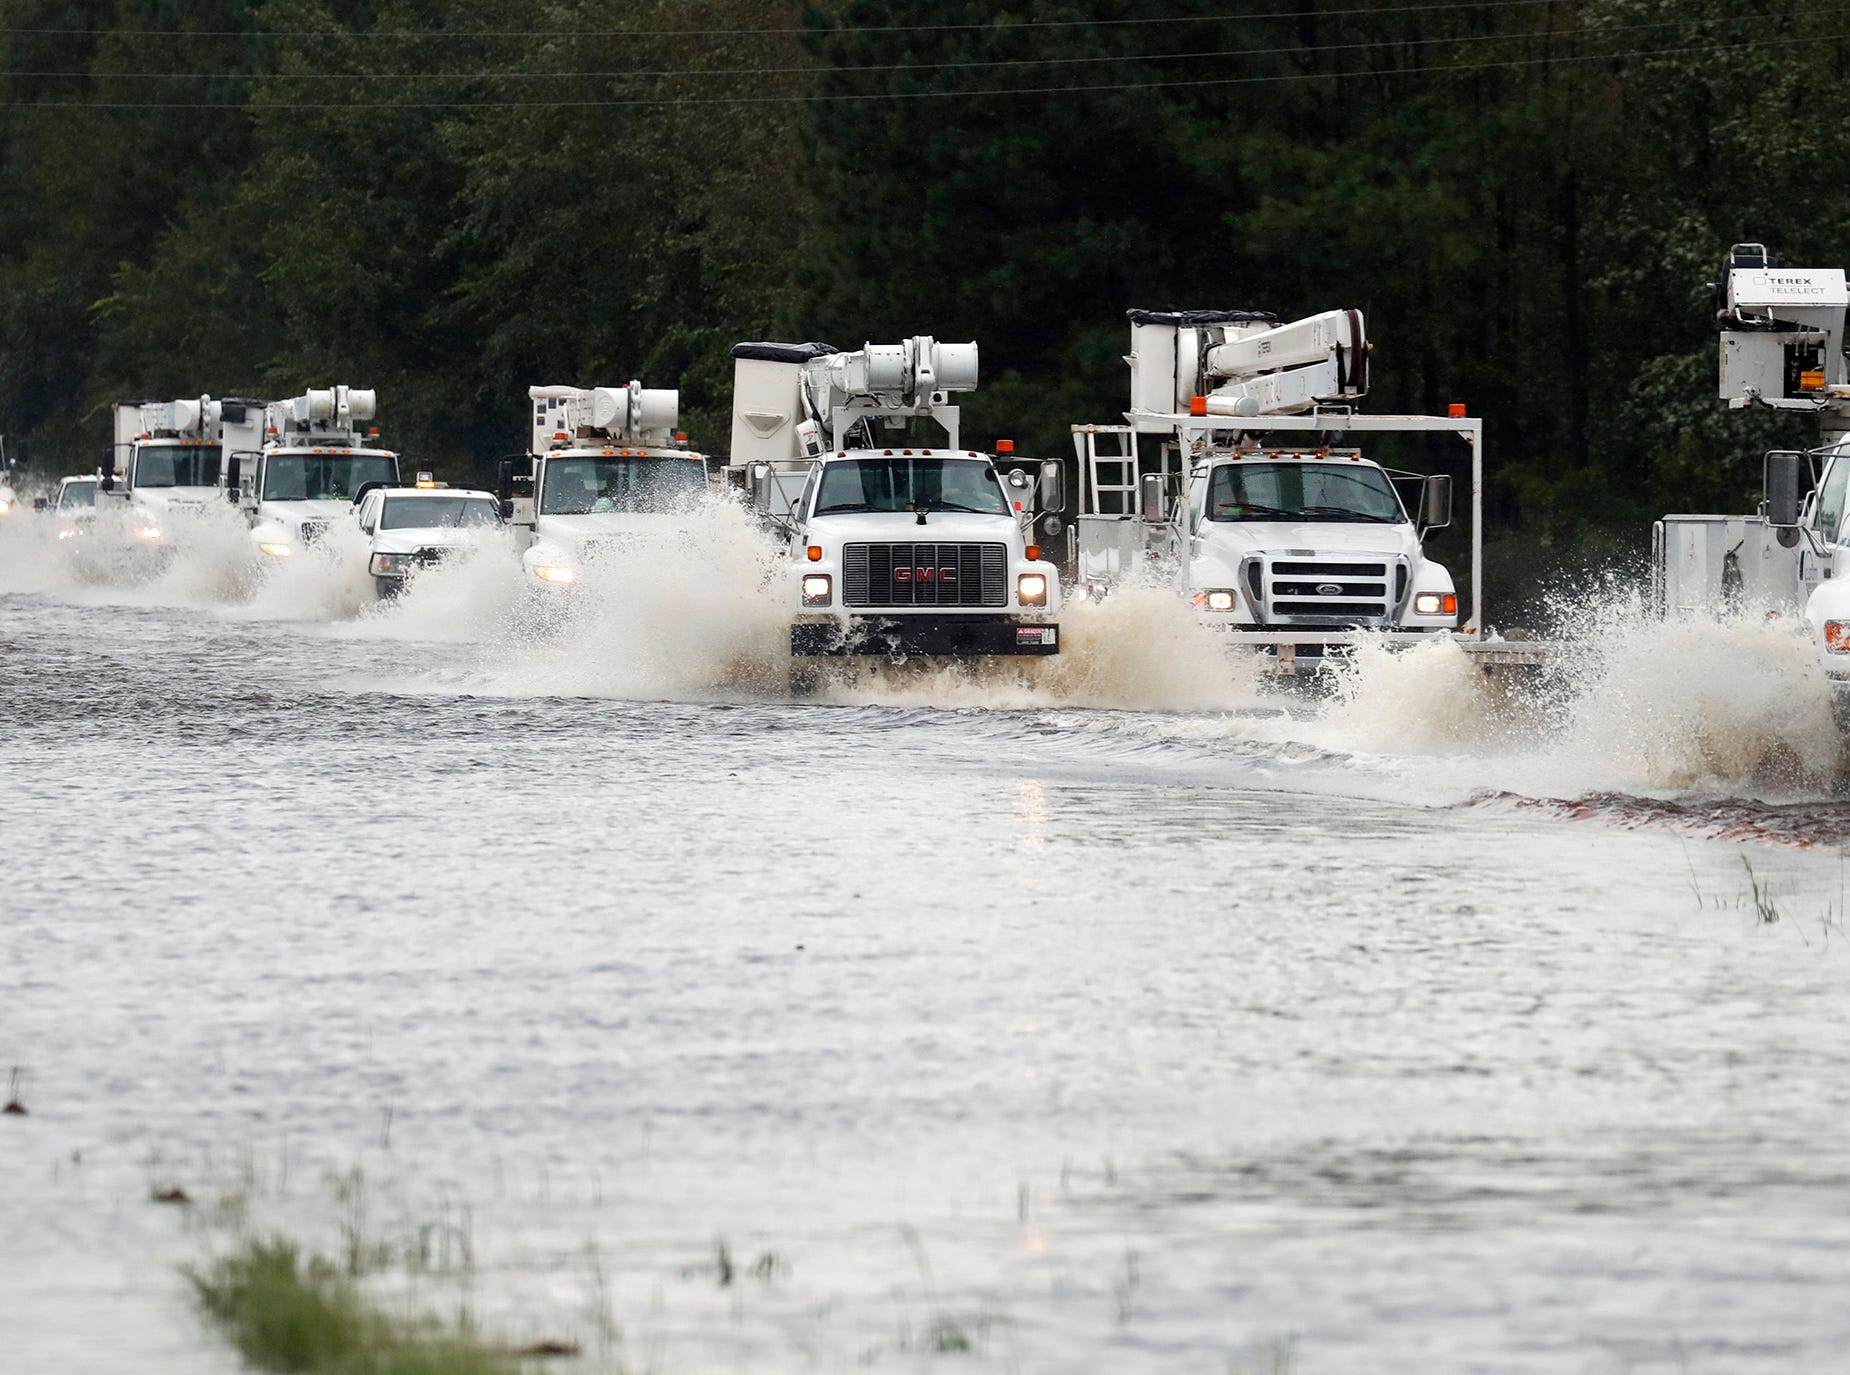 A convoy of utility trucks heading east to assist with damage caused by tropical storm Florence makes its way through an overfished stretch of U.S. Hwy. 70 east of Kinston, N.C., on Saturday Sept. 15, 2018. The road was closed to the public.